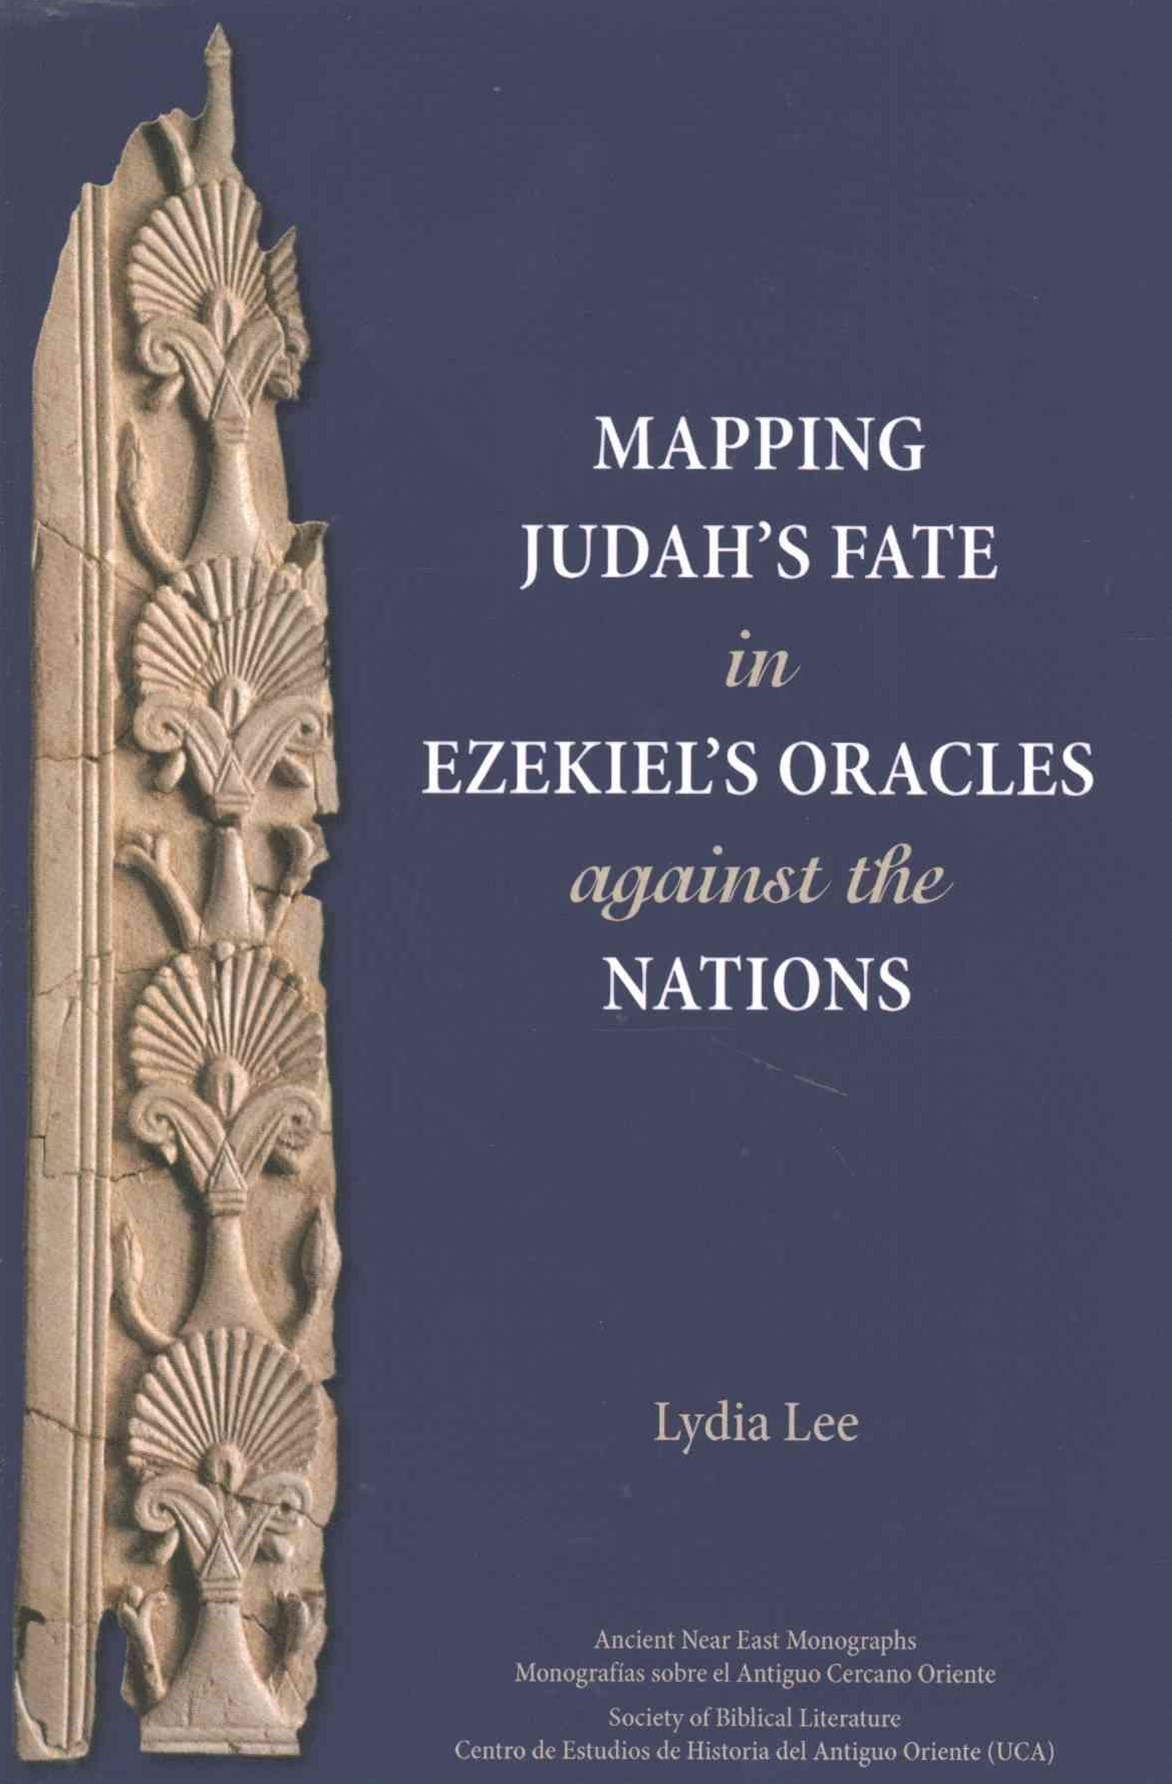 Mapping Ezekiel's Oracles Against the Nations